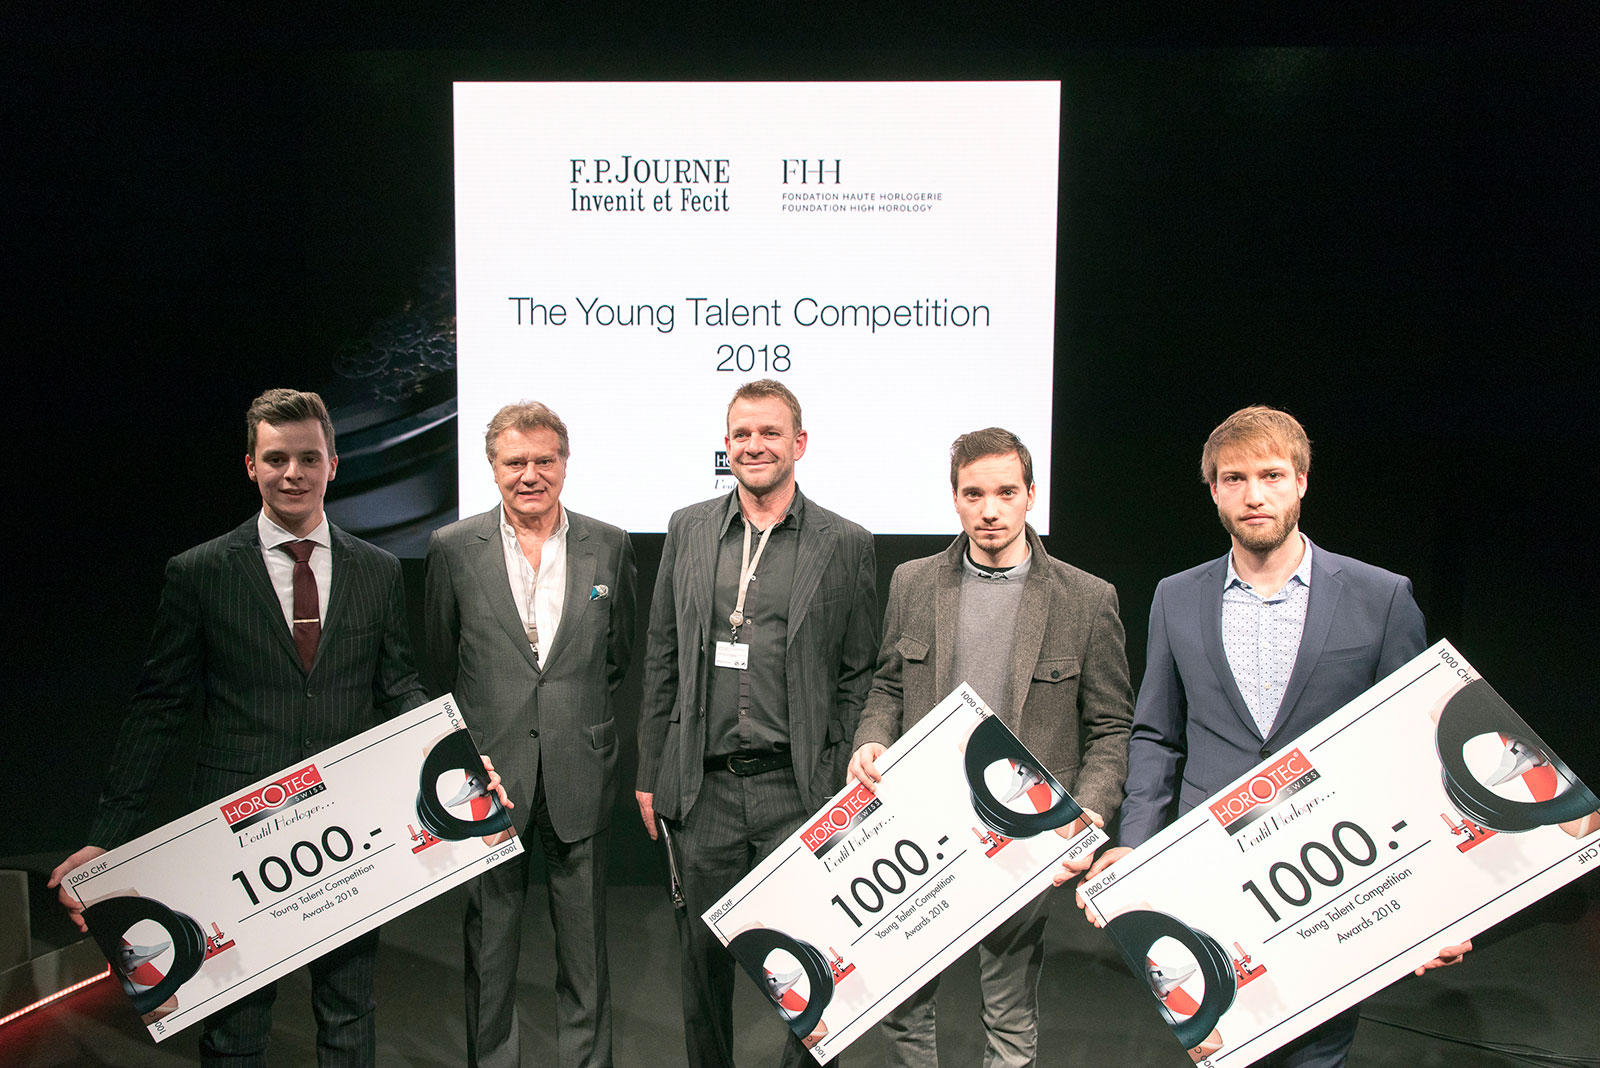 FP Journe Young Talent Competition Awards 2018